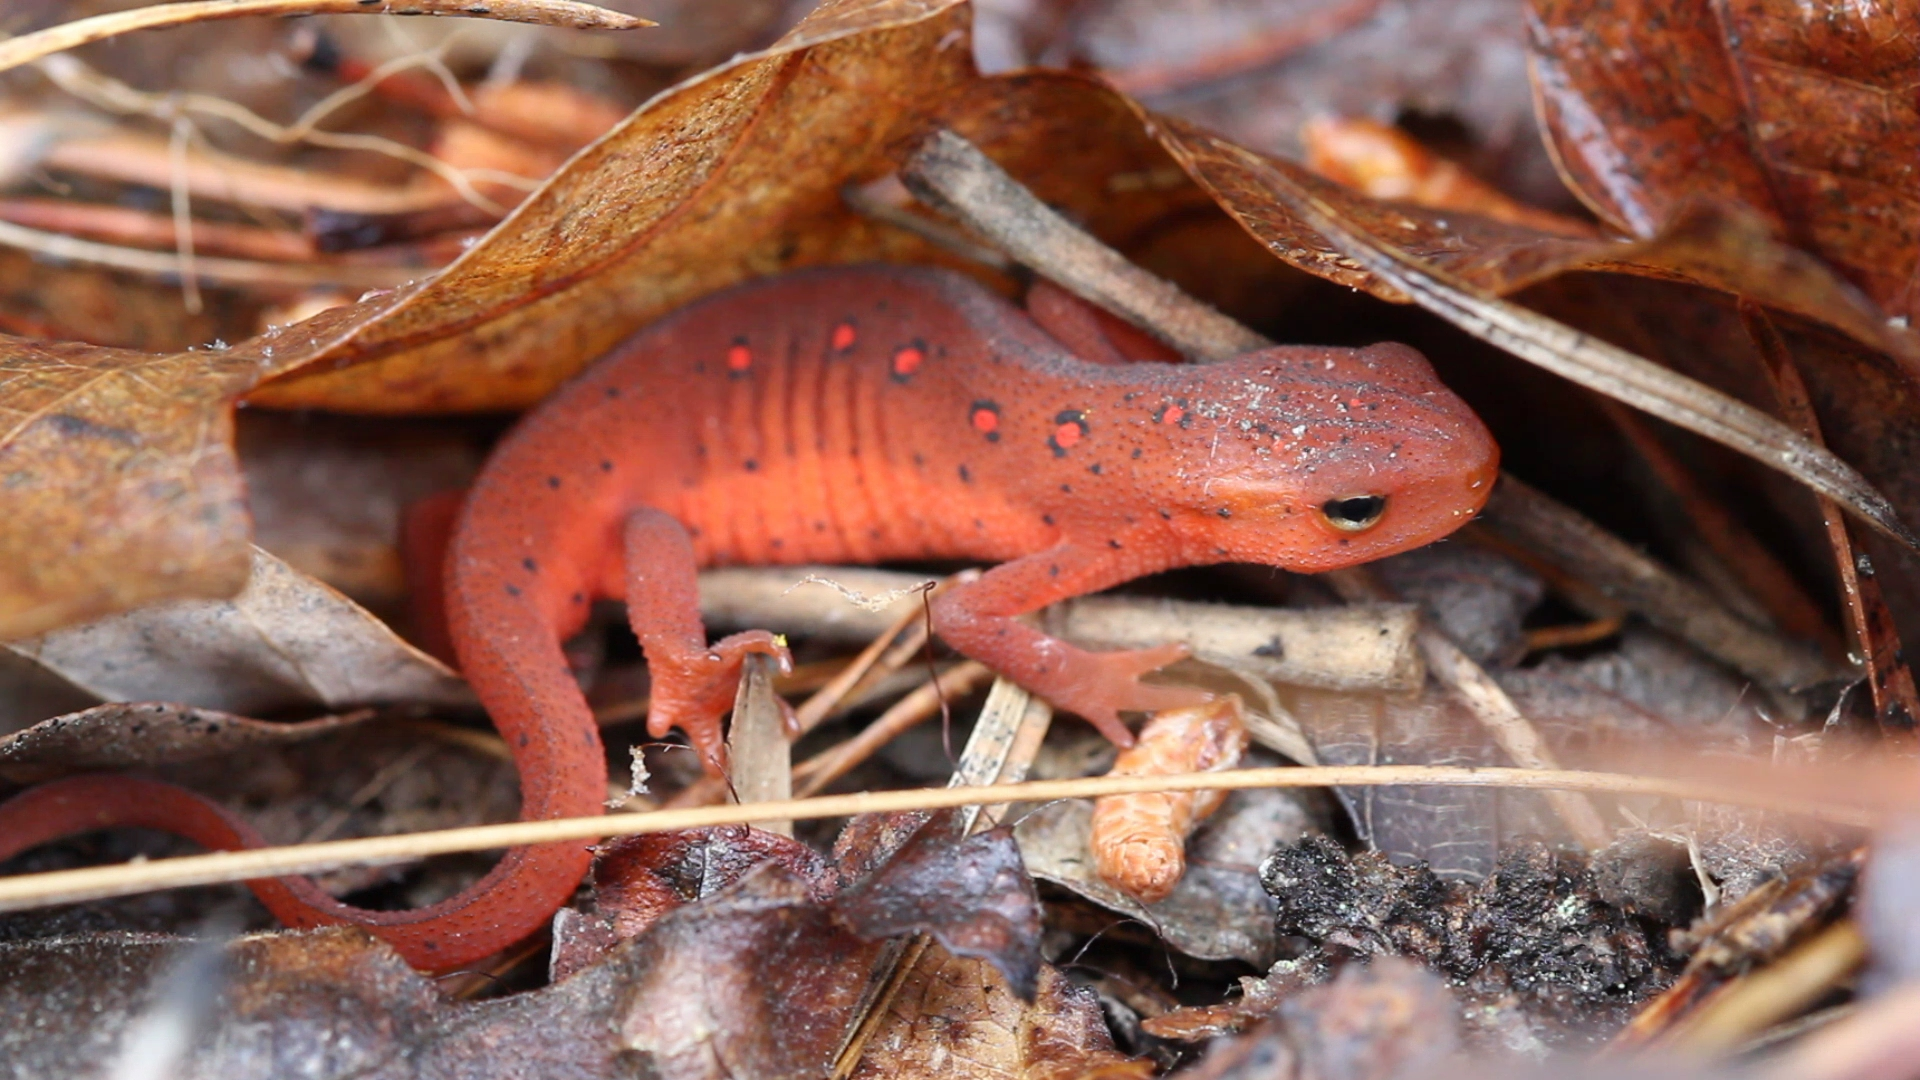 Red Eft under leaves.jpg